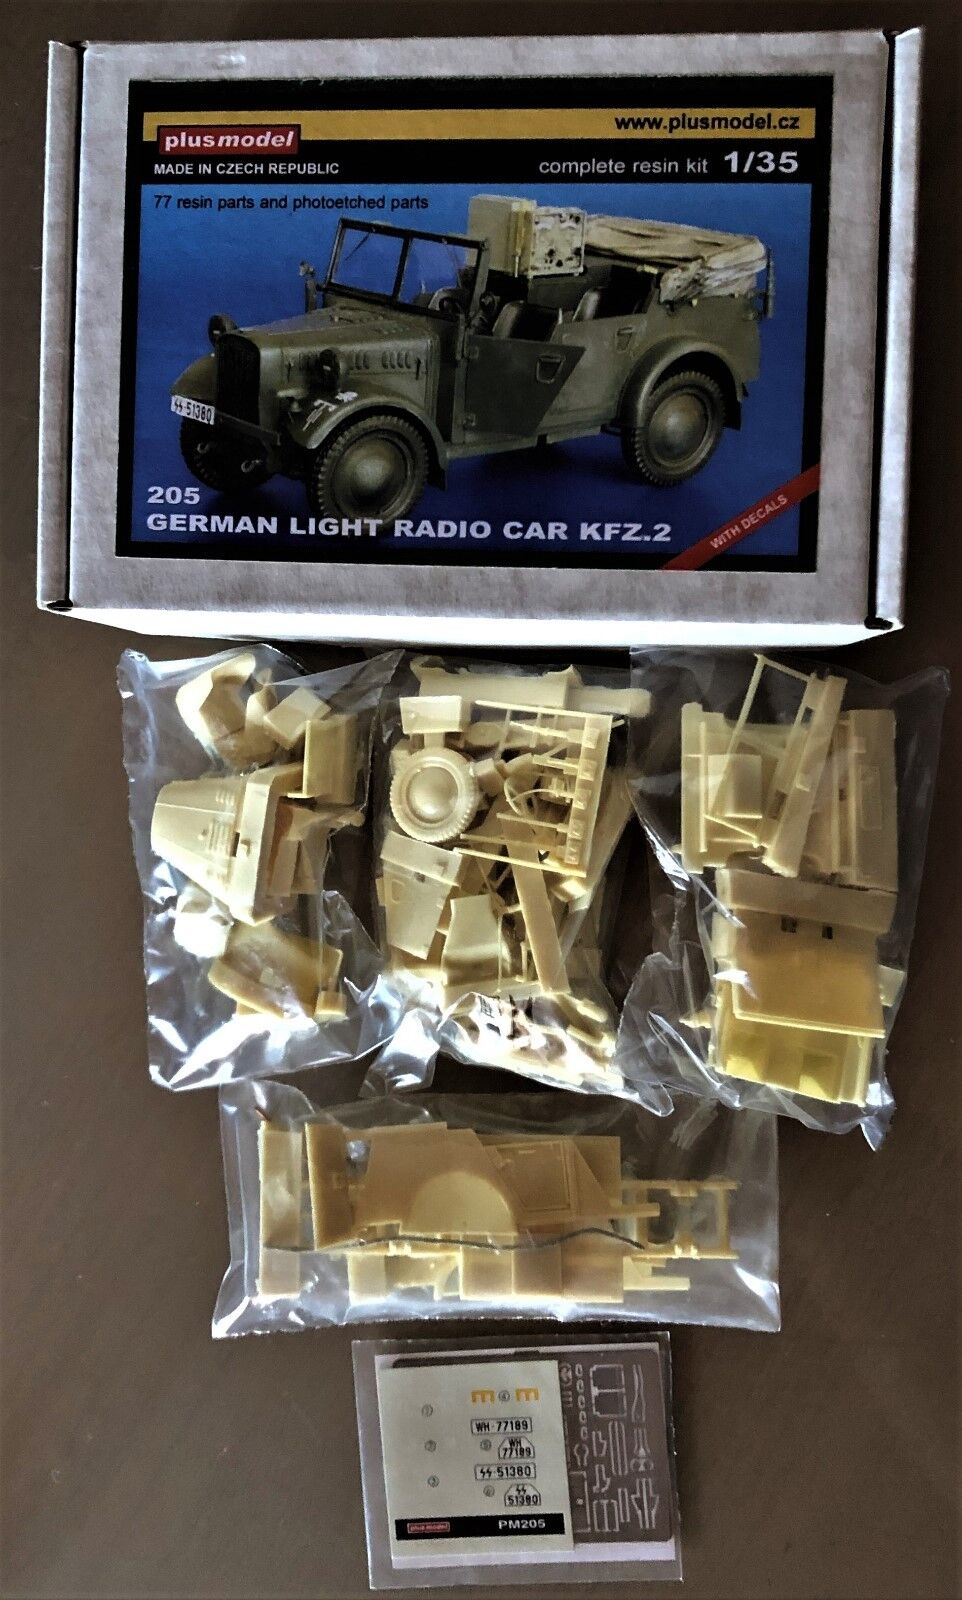 Plusmodel Plus Model 205-German Light Radio Car kfz.2 - 1 35 Resin Kit